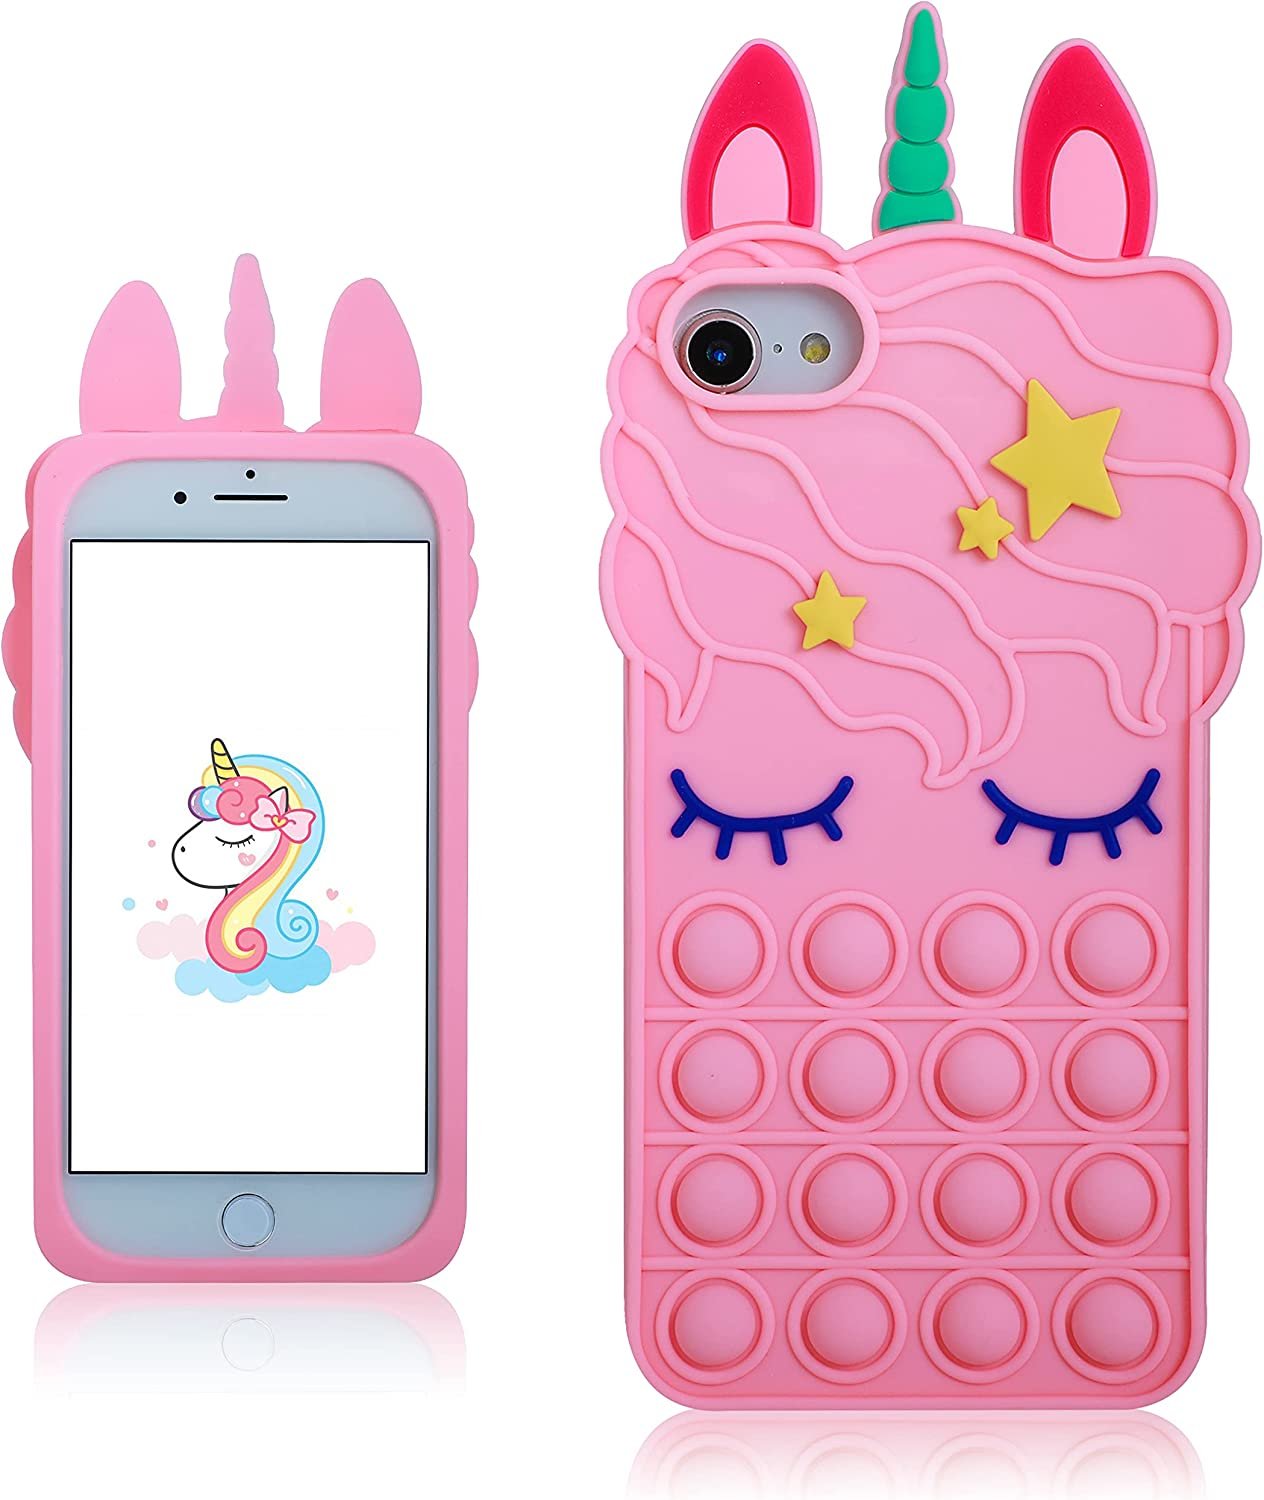 oqpa for iPhone 6/6S/7/8/SE 2020 Case Cartoon Kawaii Cute Funny Fun Silicone Design Cover for Girls Kids Boys Teen,Fashion Cases Fidget Aesthetic Bubble Unicorn(for iPhone 6/6S/7/8/SE 2020 4.7